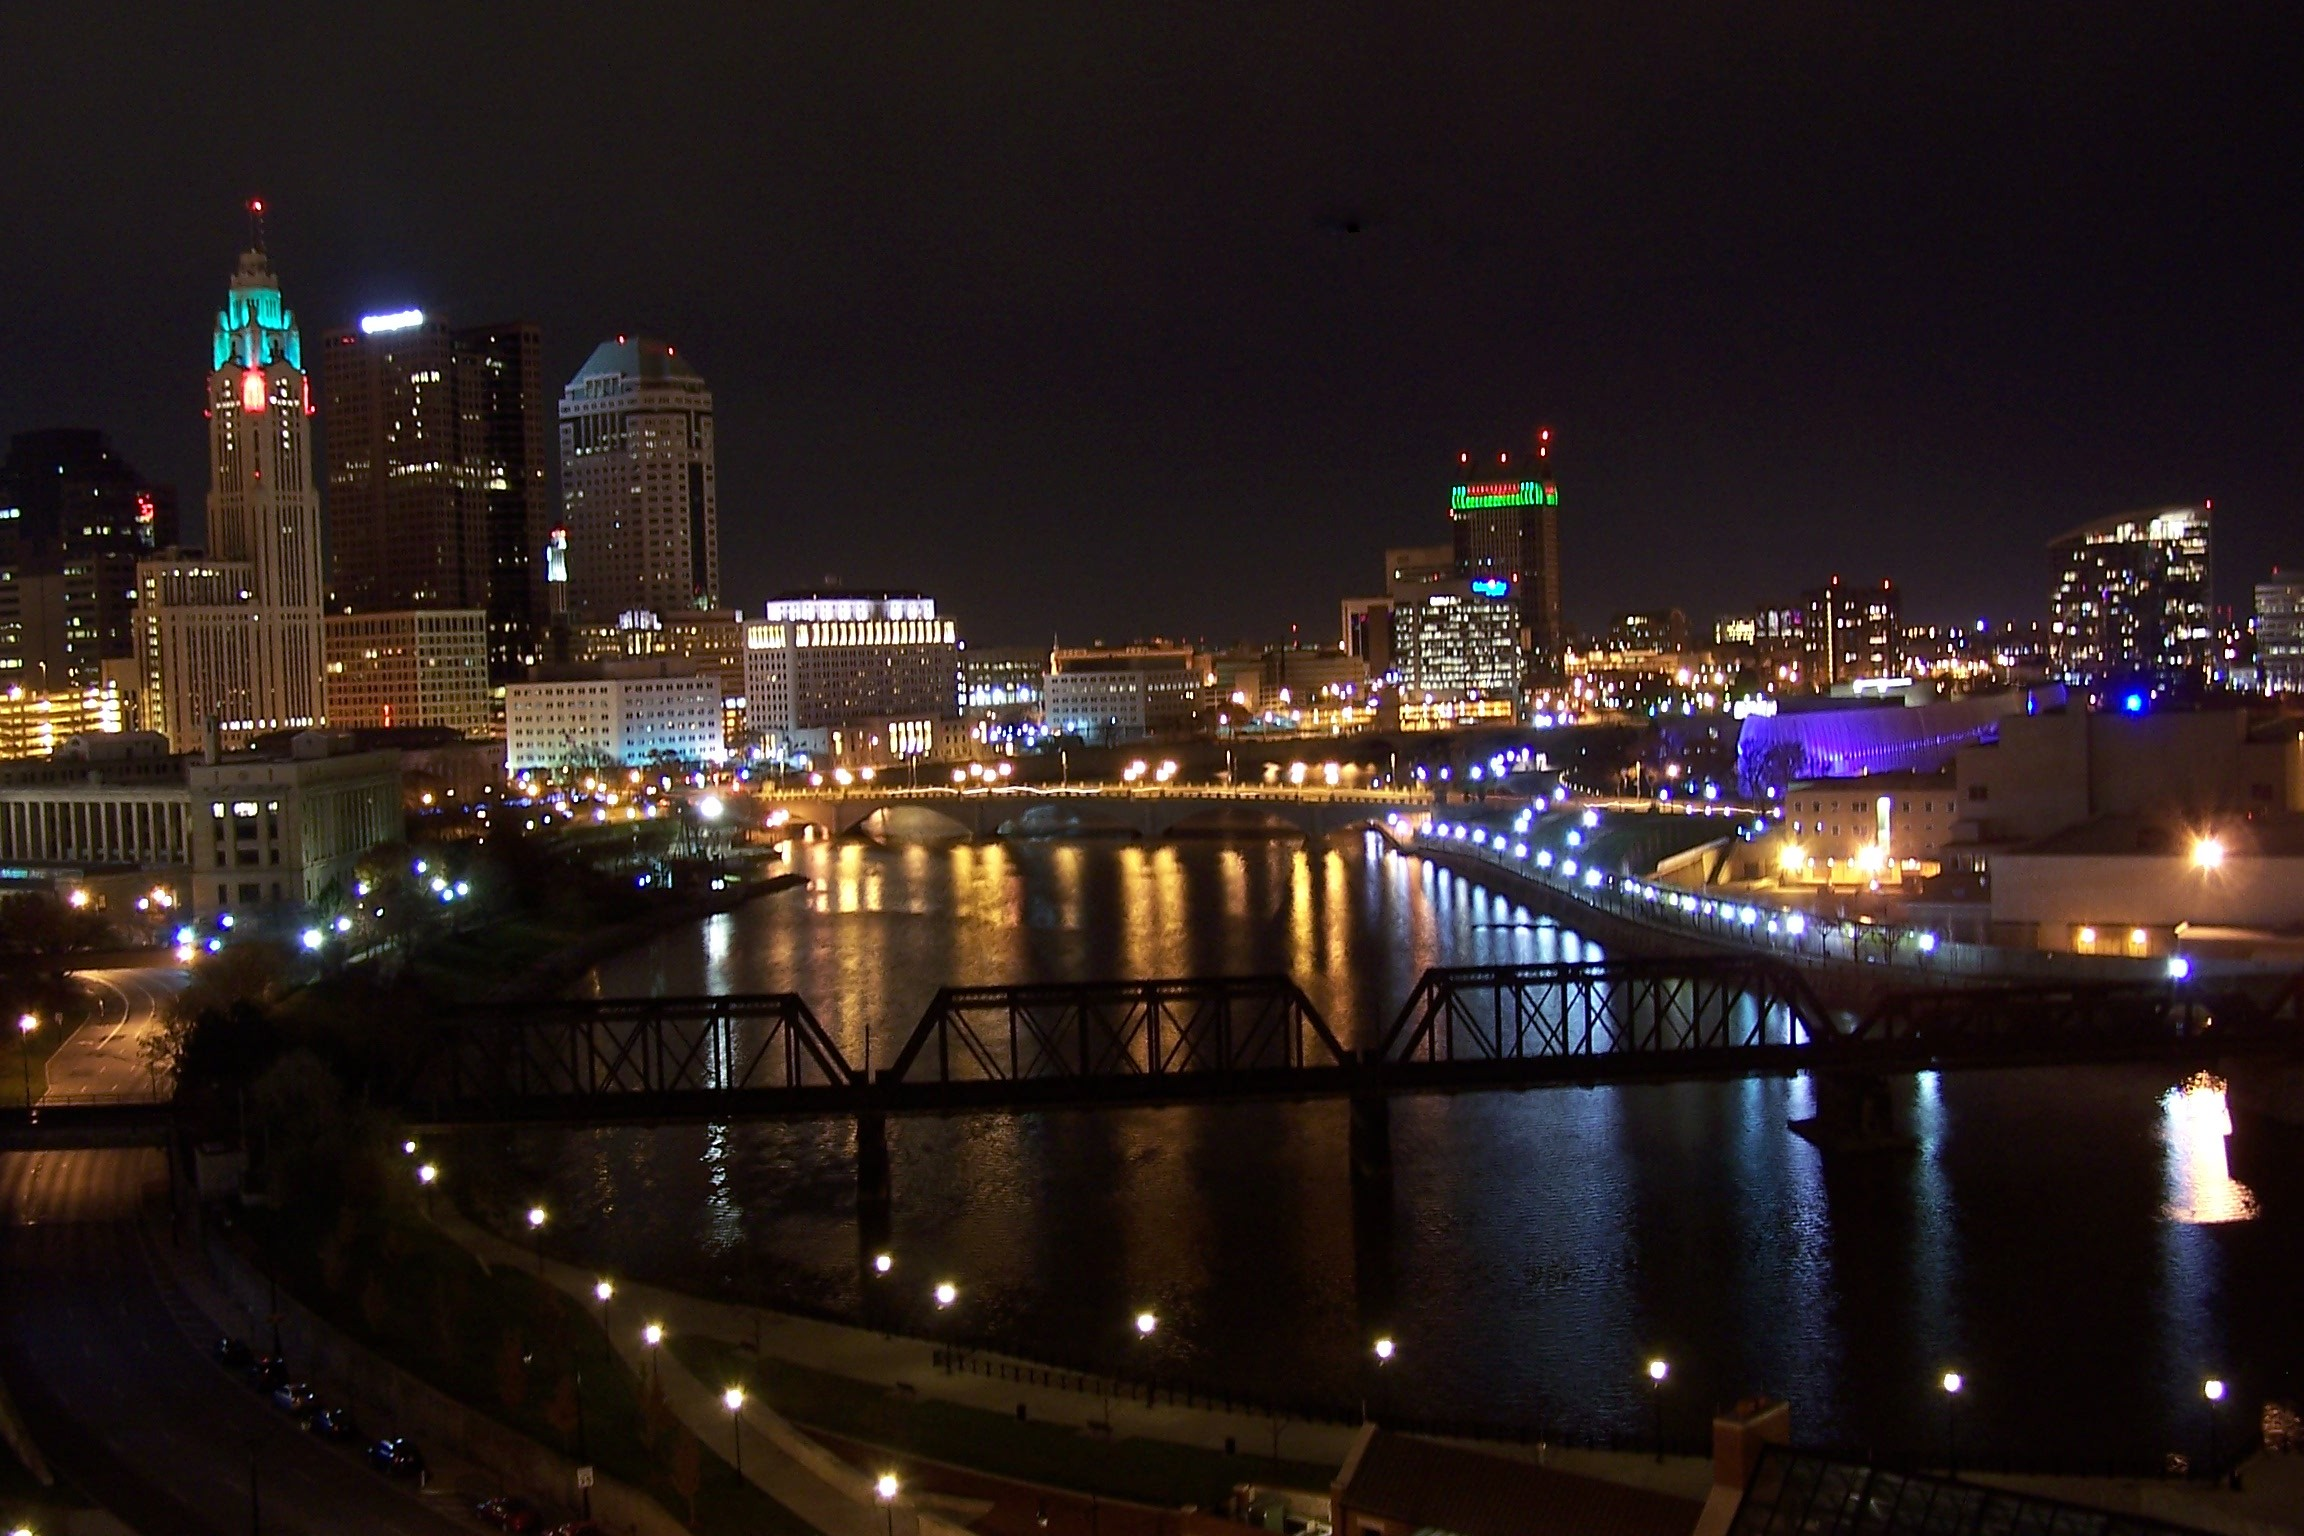 columbus ohio wallpaper - photo #16